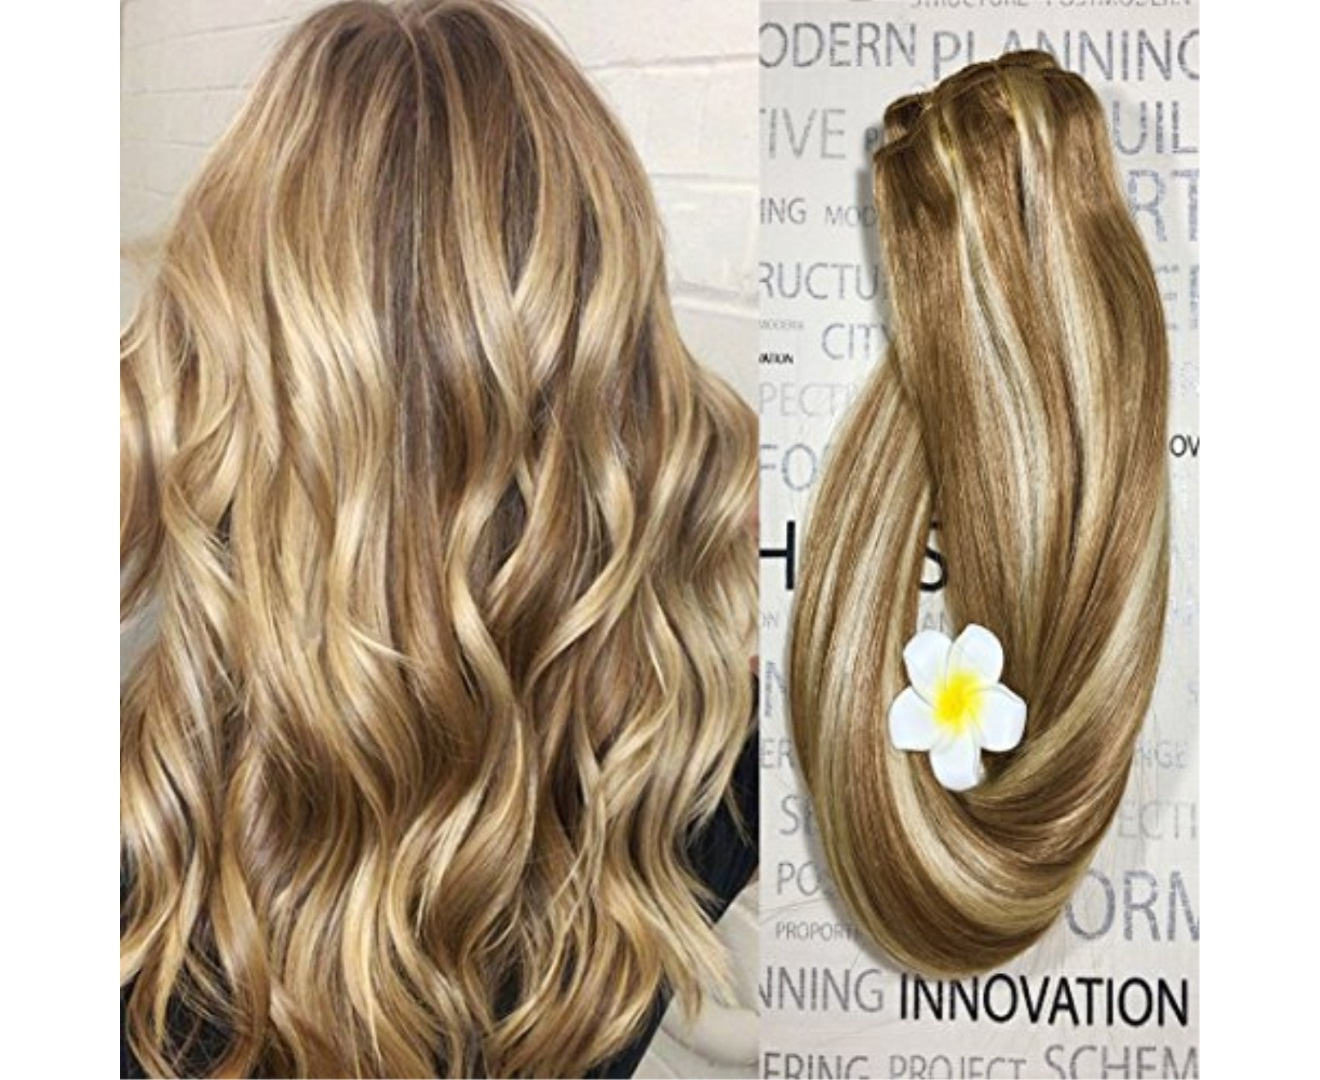 Clip in Hair Extensions Human Hair Dirty Blonde Highlights 16 inch Balayage  Ombre Long Hair Extensions Clip on for Fine Hair Full Head 12/613 Straight